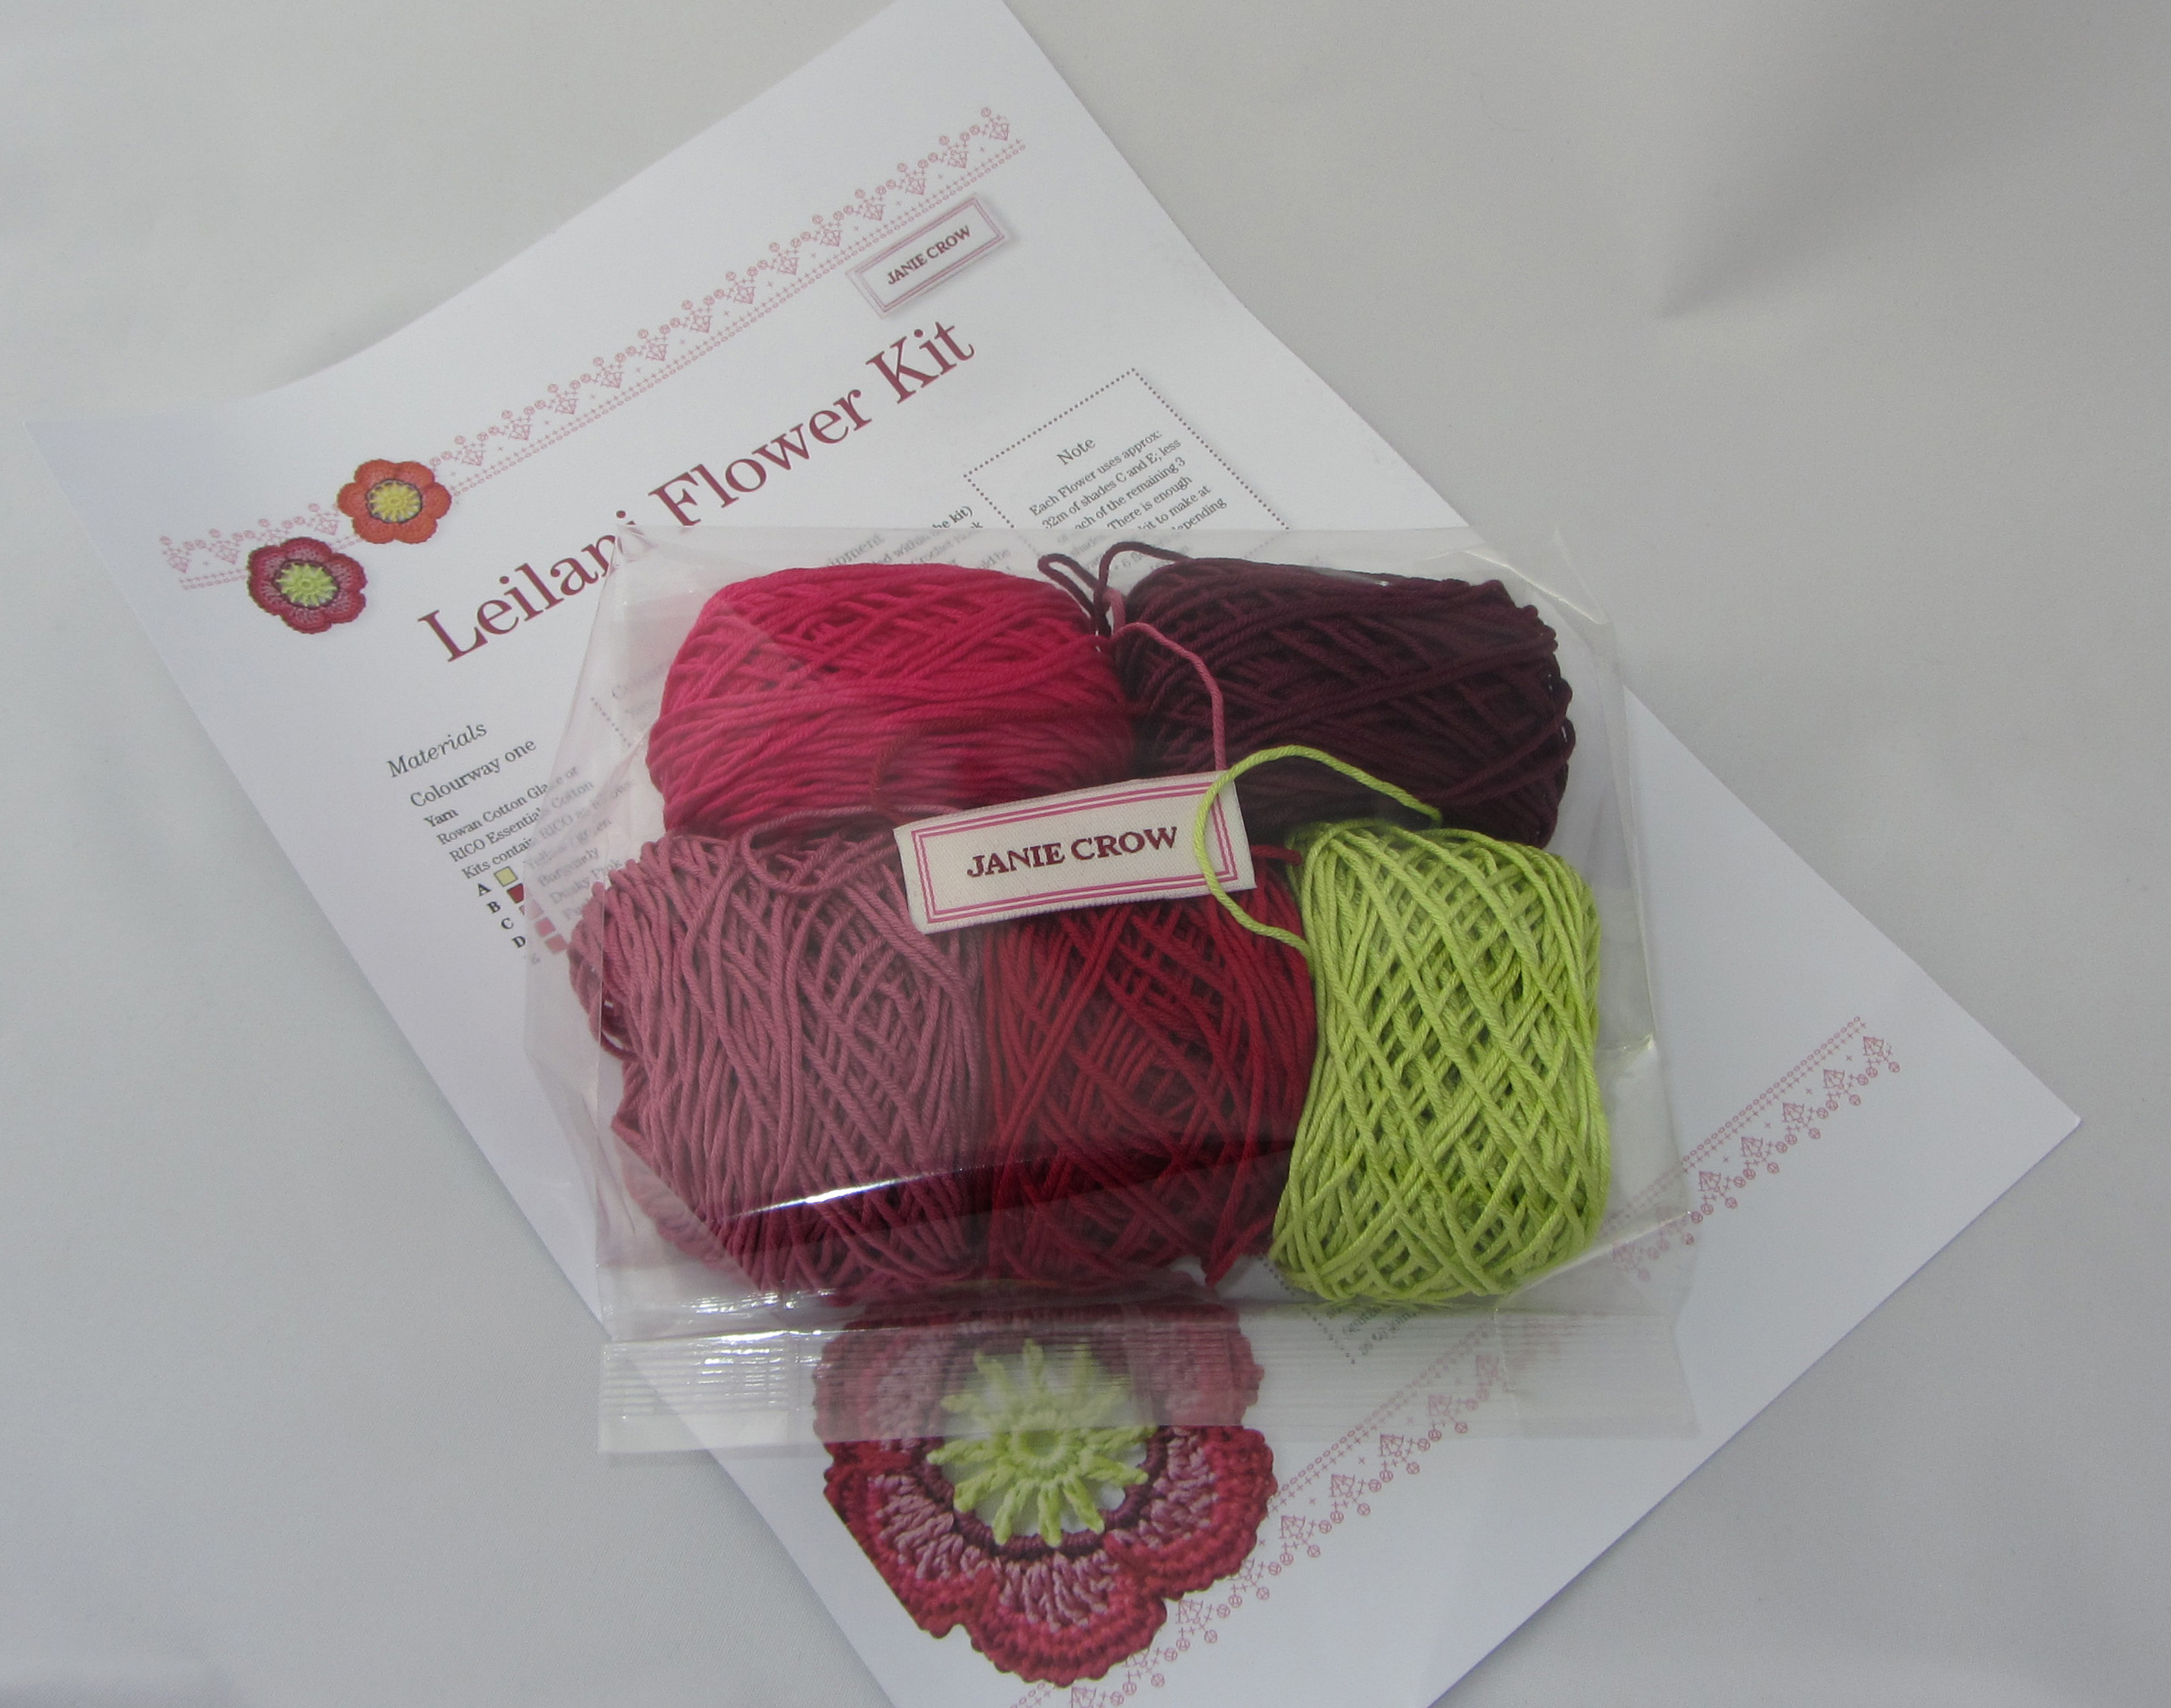 Crocheting Kit : Leilani crochet flower kit jane crowfoot